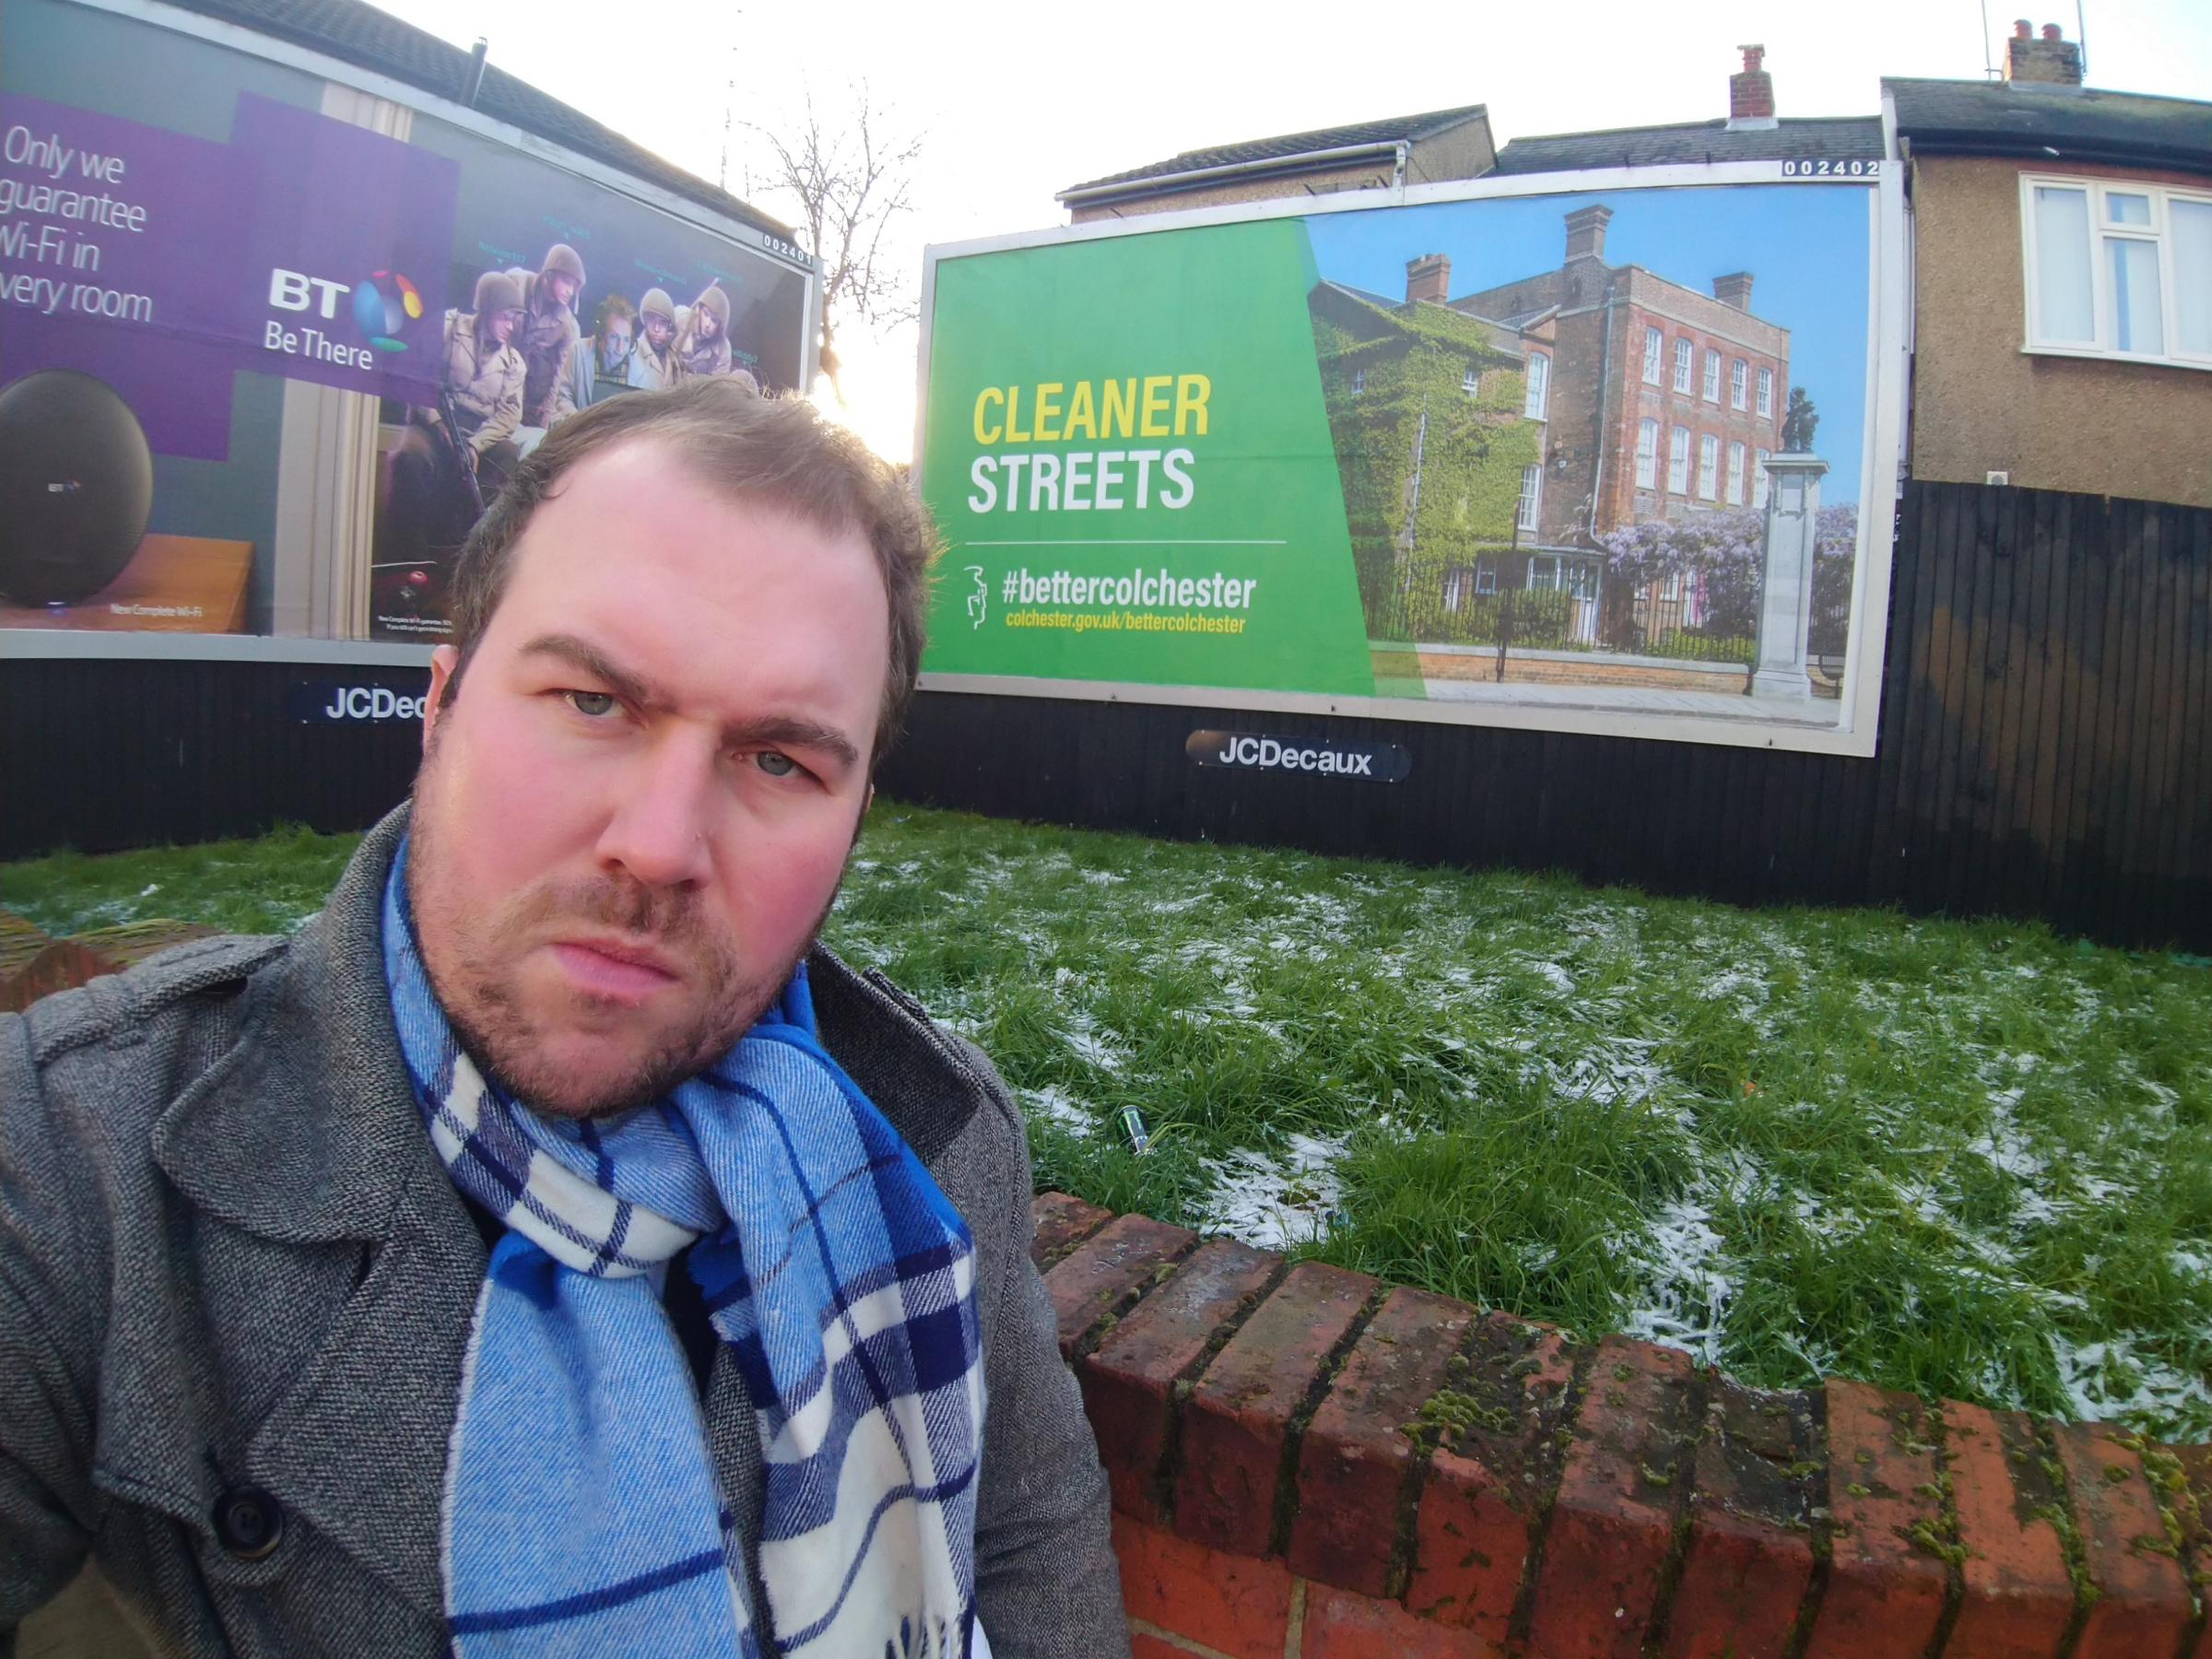 councillor Darius Laws has criticised the messages on some of the billboards